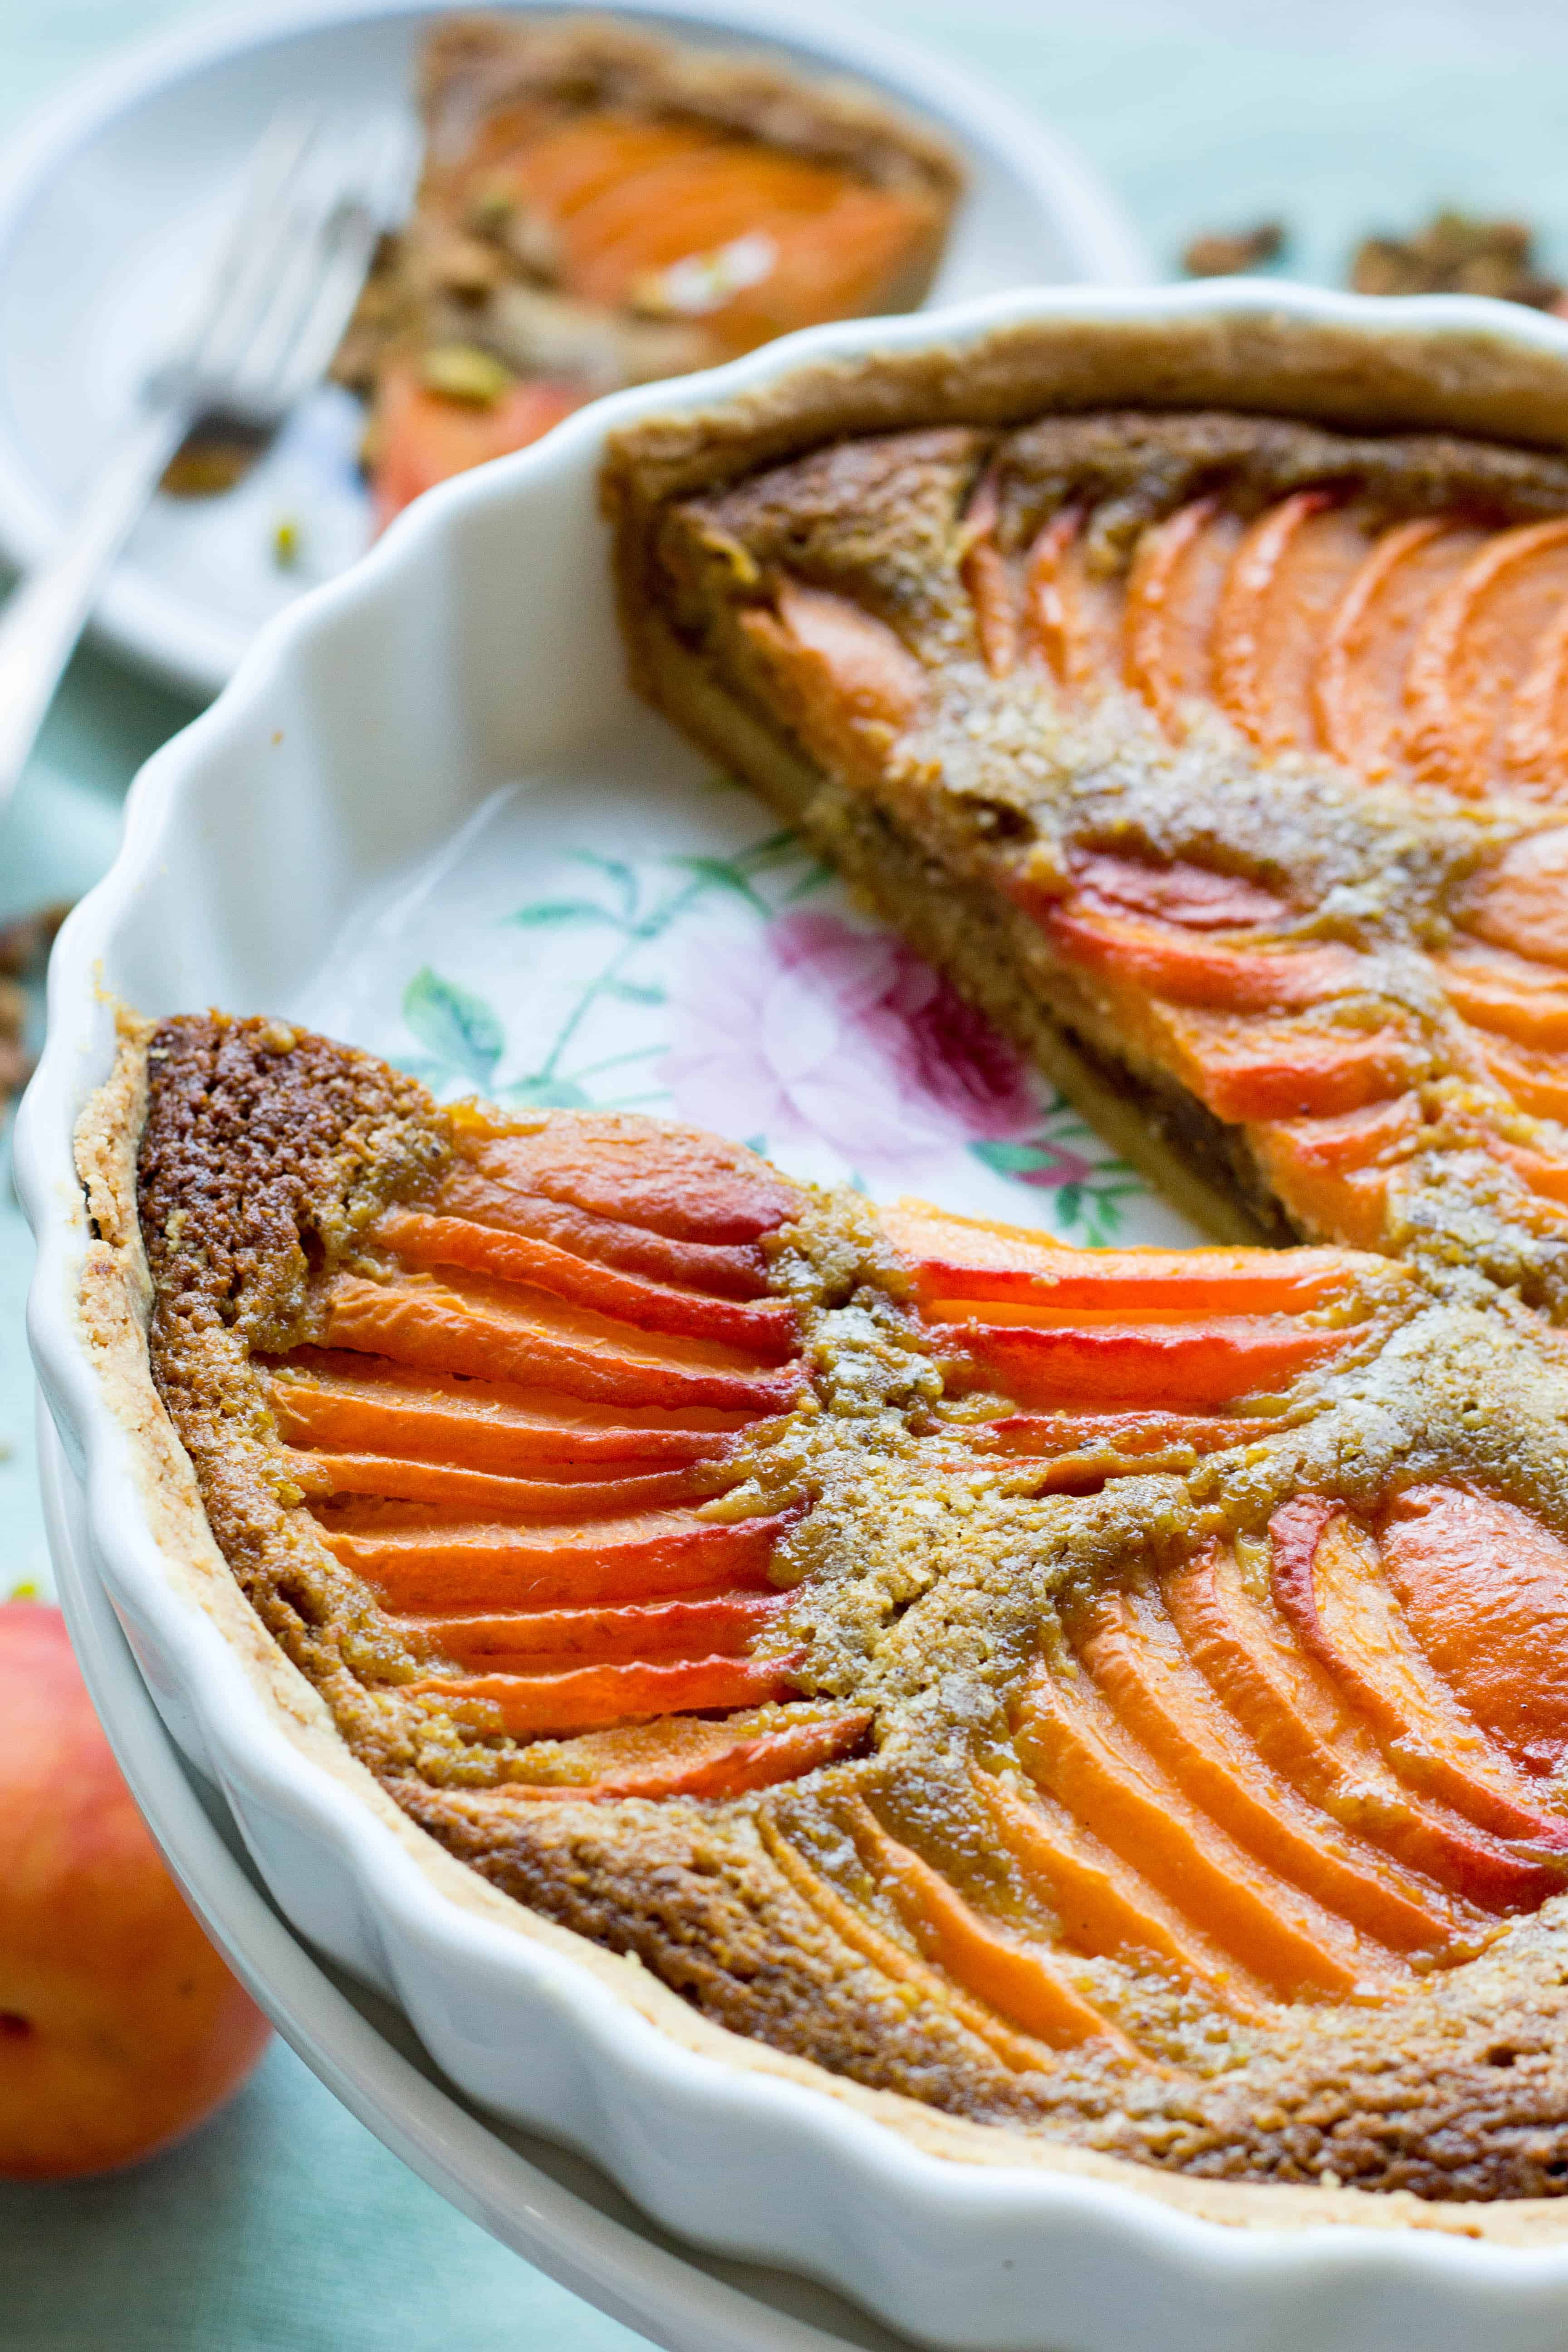 An apricot pistachio tart in a round baking dish with a slice missing.